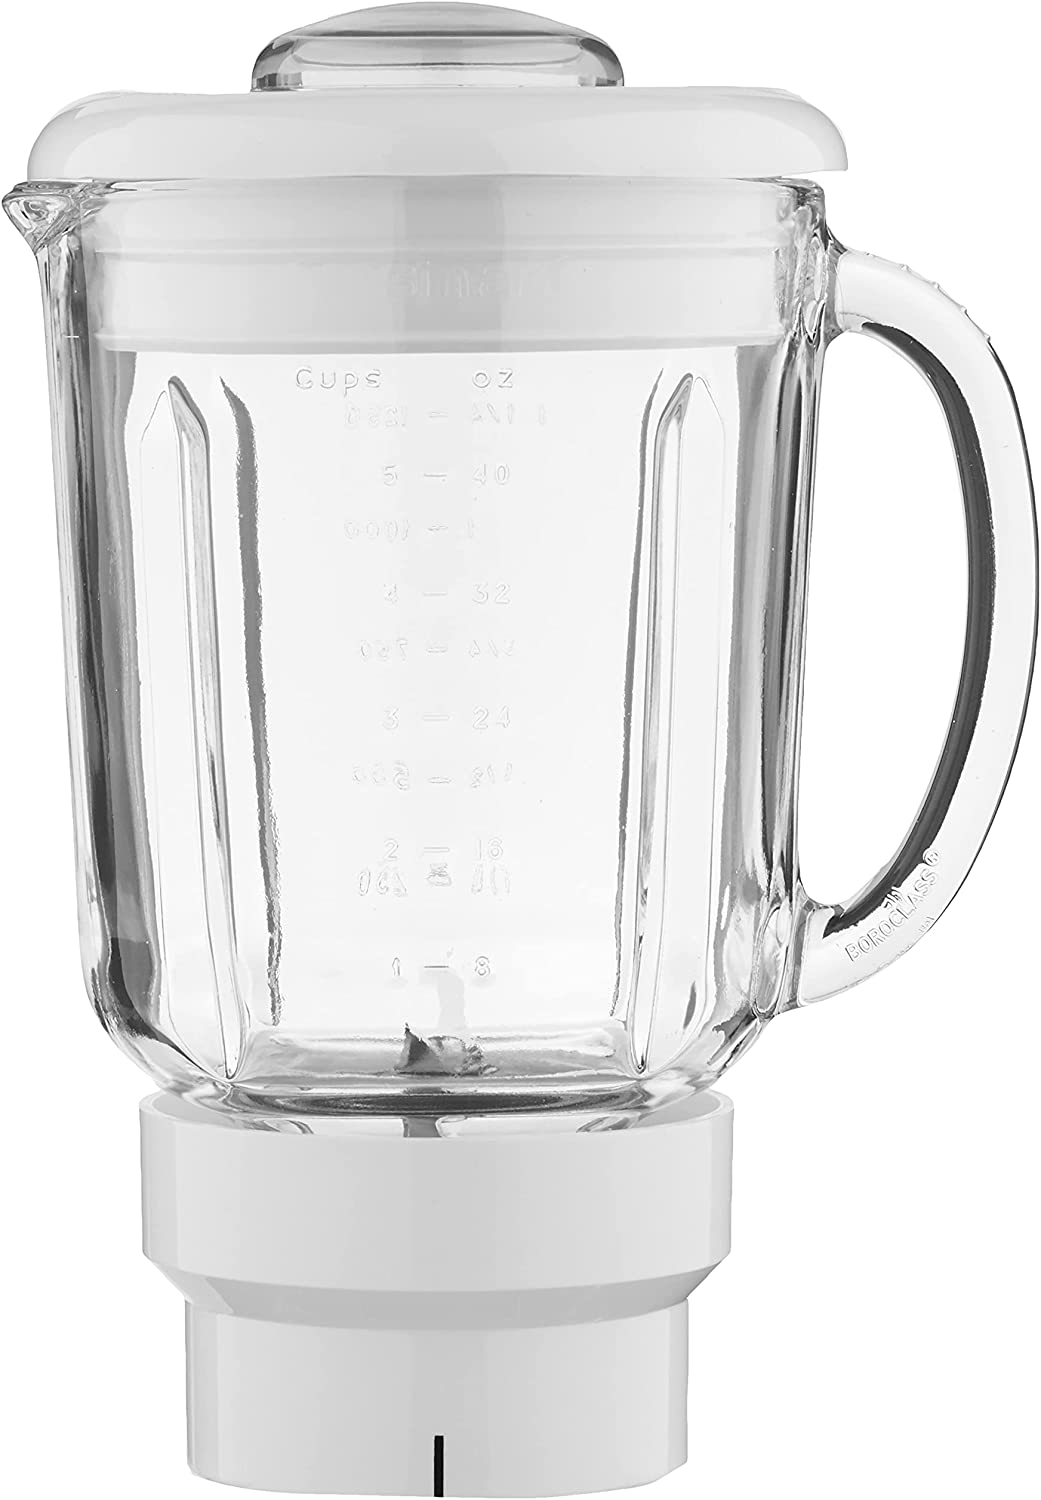 Special price Cuisinart Blender Attachment In a popularity for White Mixer Stand